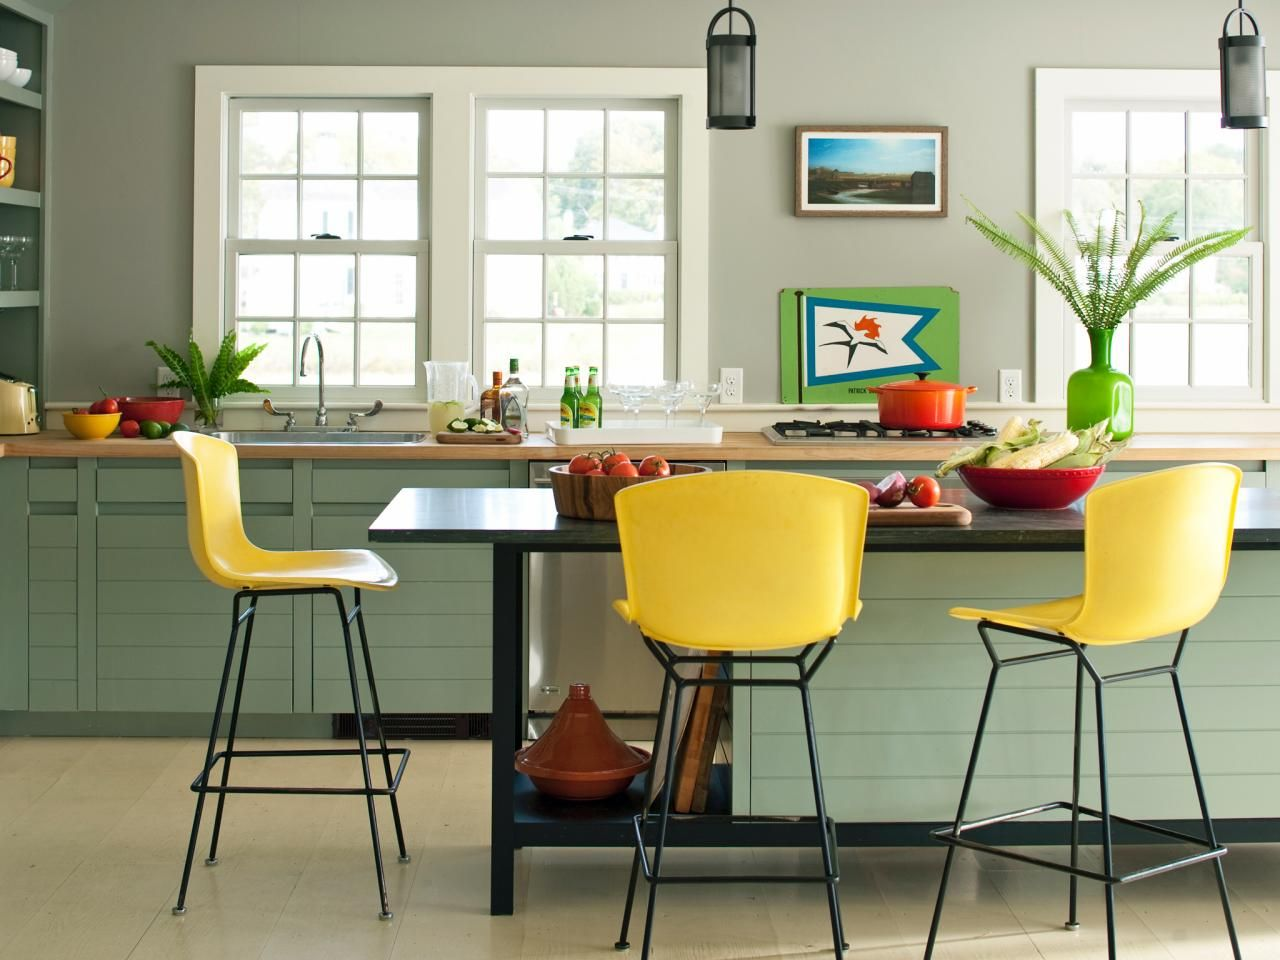 30 Colorful Kitchen Design Ideas From  Hgtv Kitchens And Stools Glamorous Designer Kitchen Colors Design Decoration